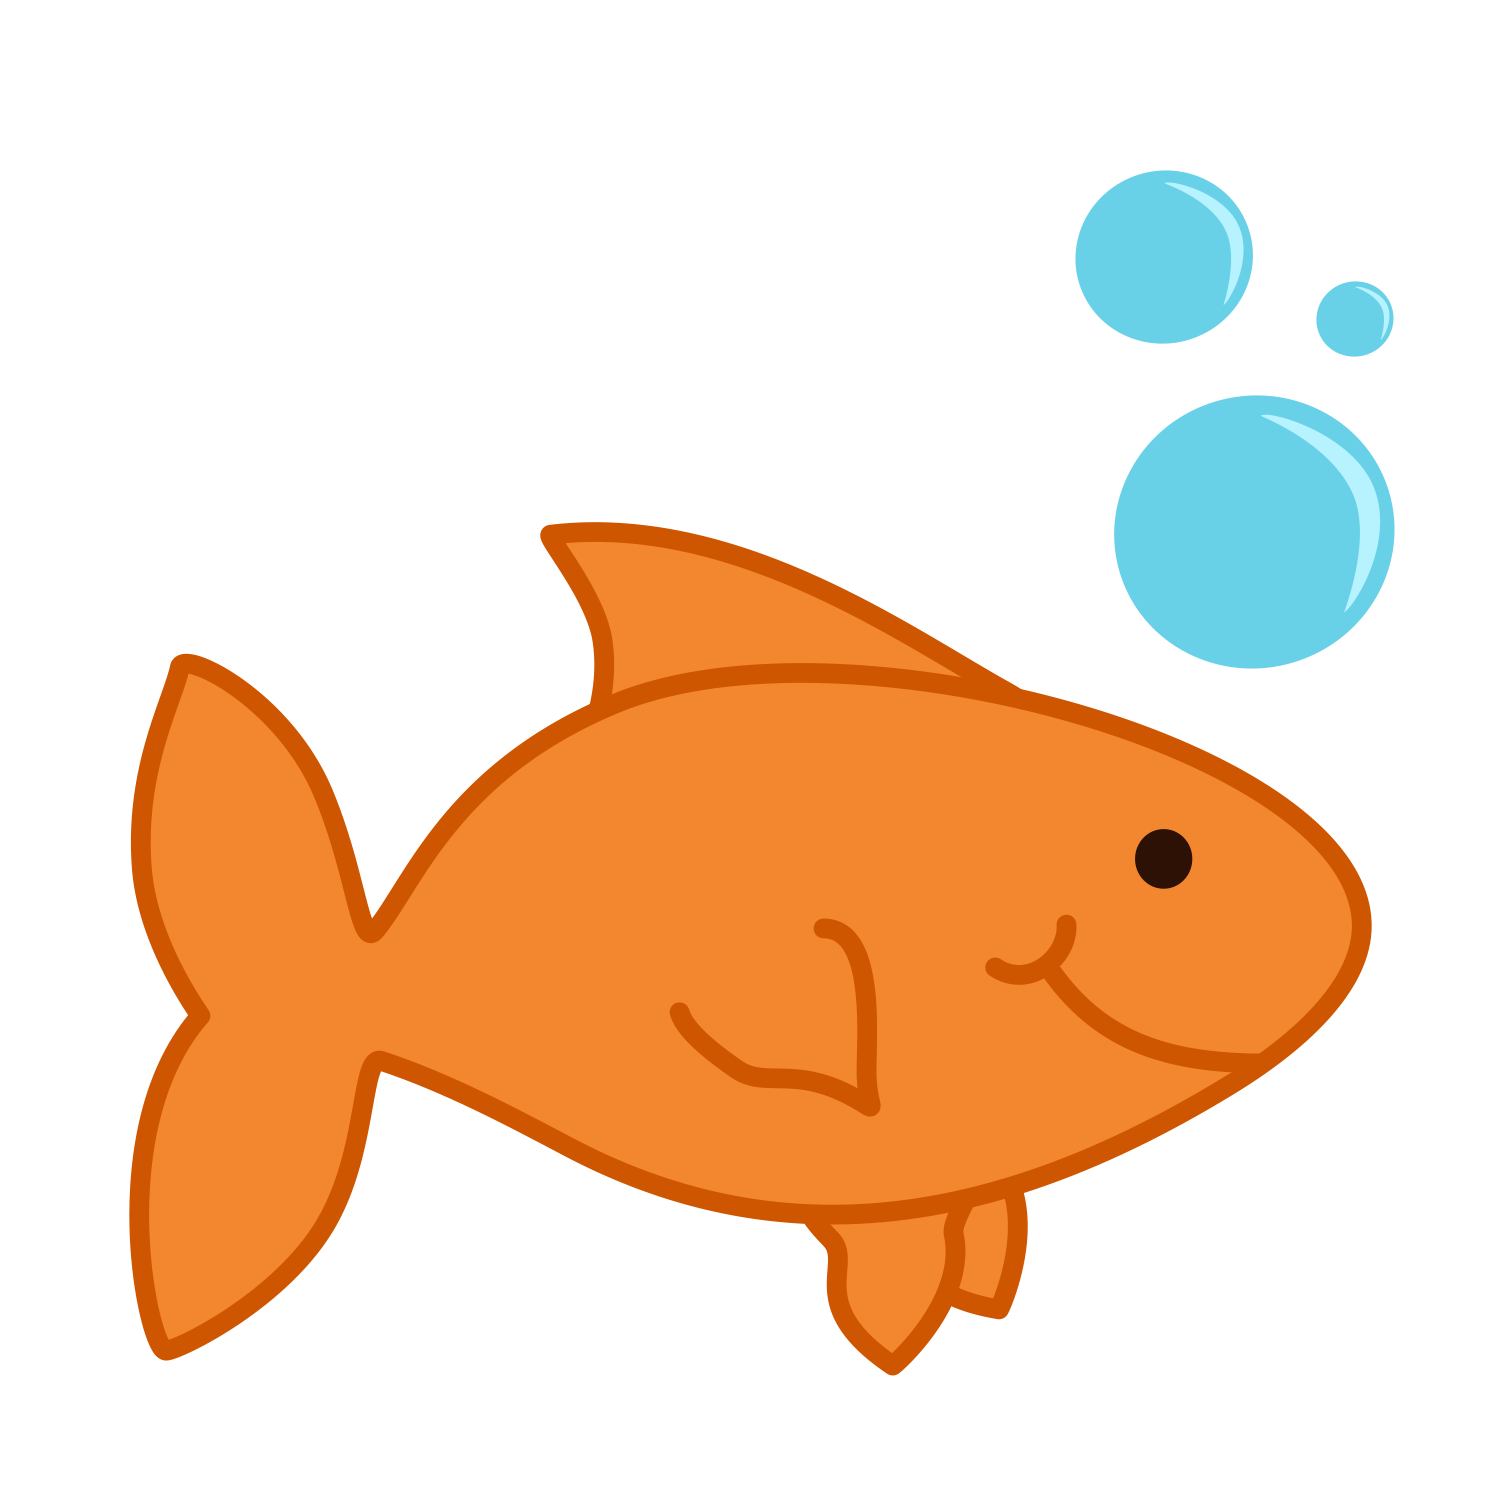 Gold Fish clipart #13, Download drawings